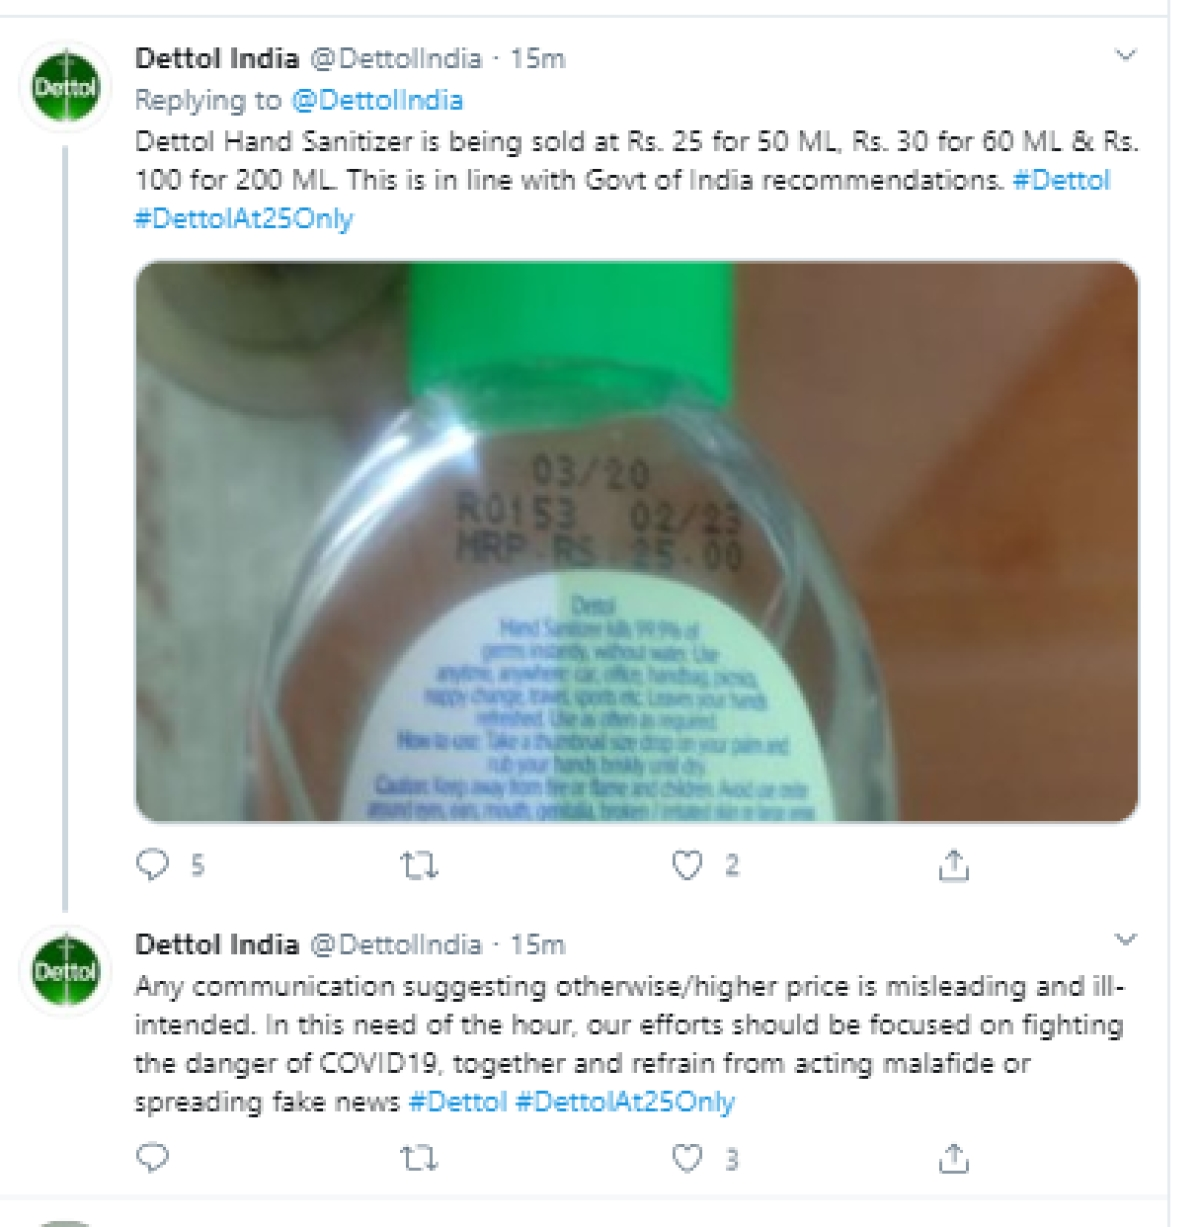 Baba Ramdev takes dig at Dettol on Twitter; Dettol responds...